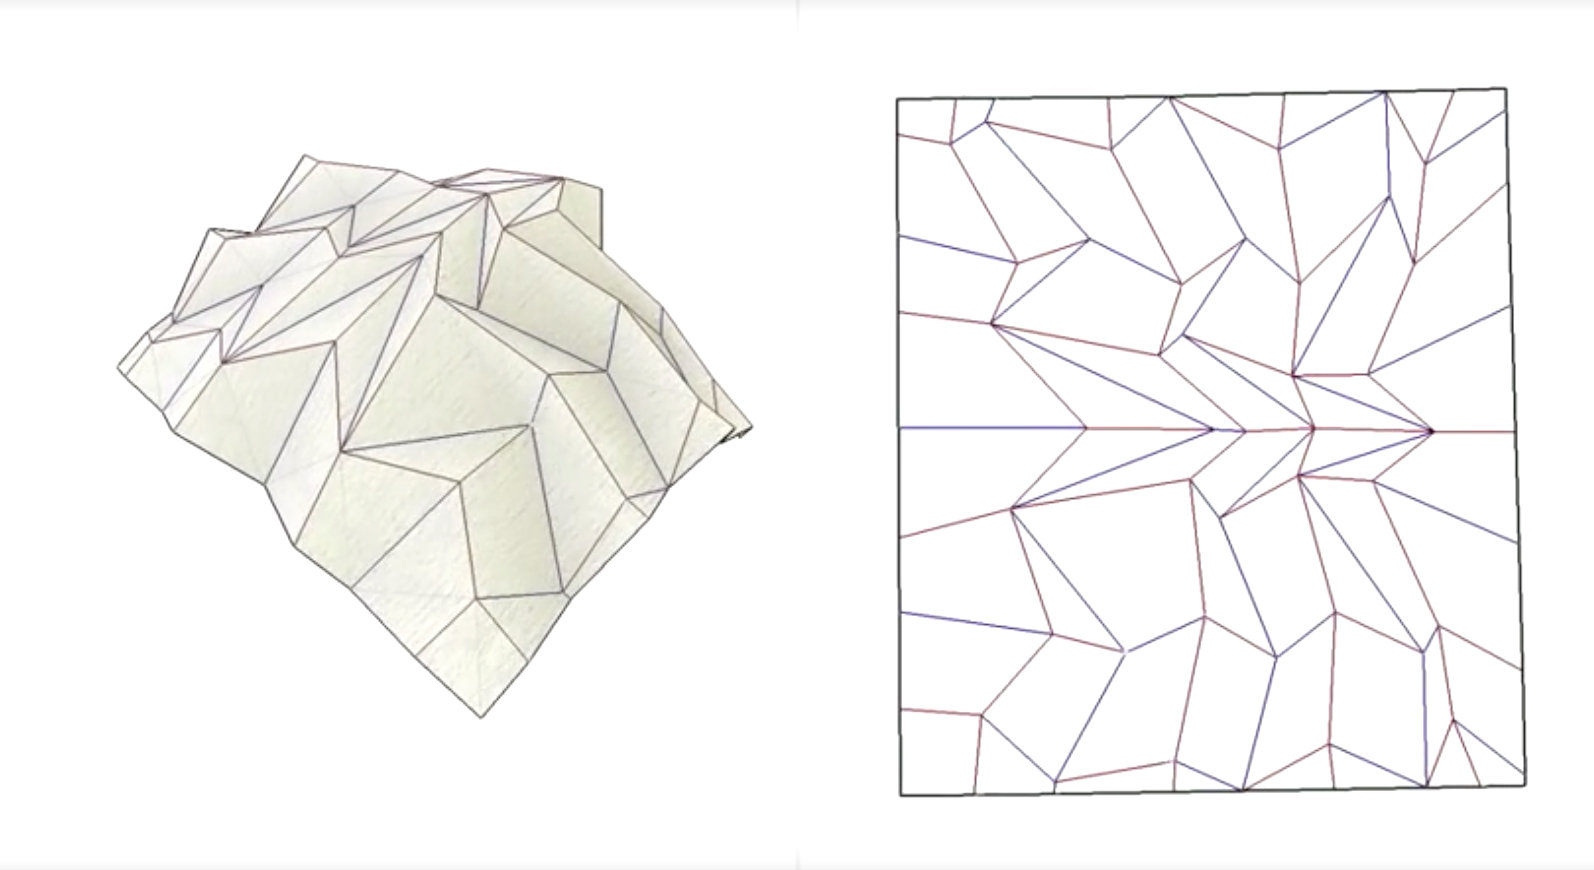 Origami Opens Up Smart Options For Architecture On The Moon And Mars Complex Diagrams Pdf Freeform Software By Collaborator Tomohiro Tachi Allows Team To Sculpt Or Generate Forms While Altering Crease Pattern Of